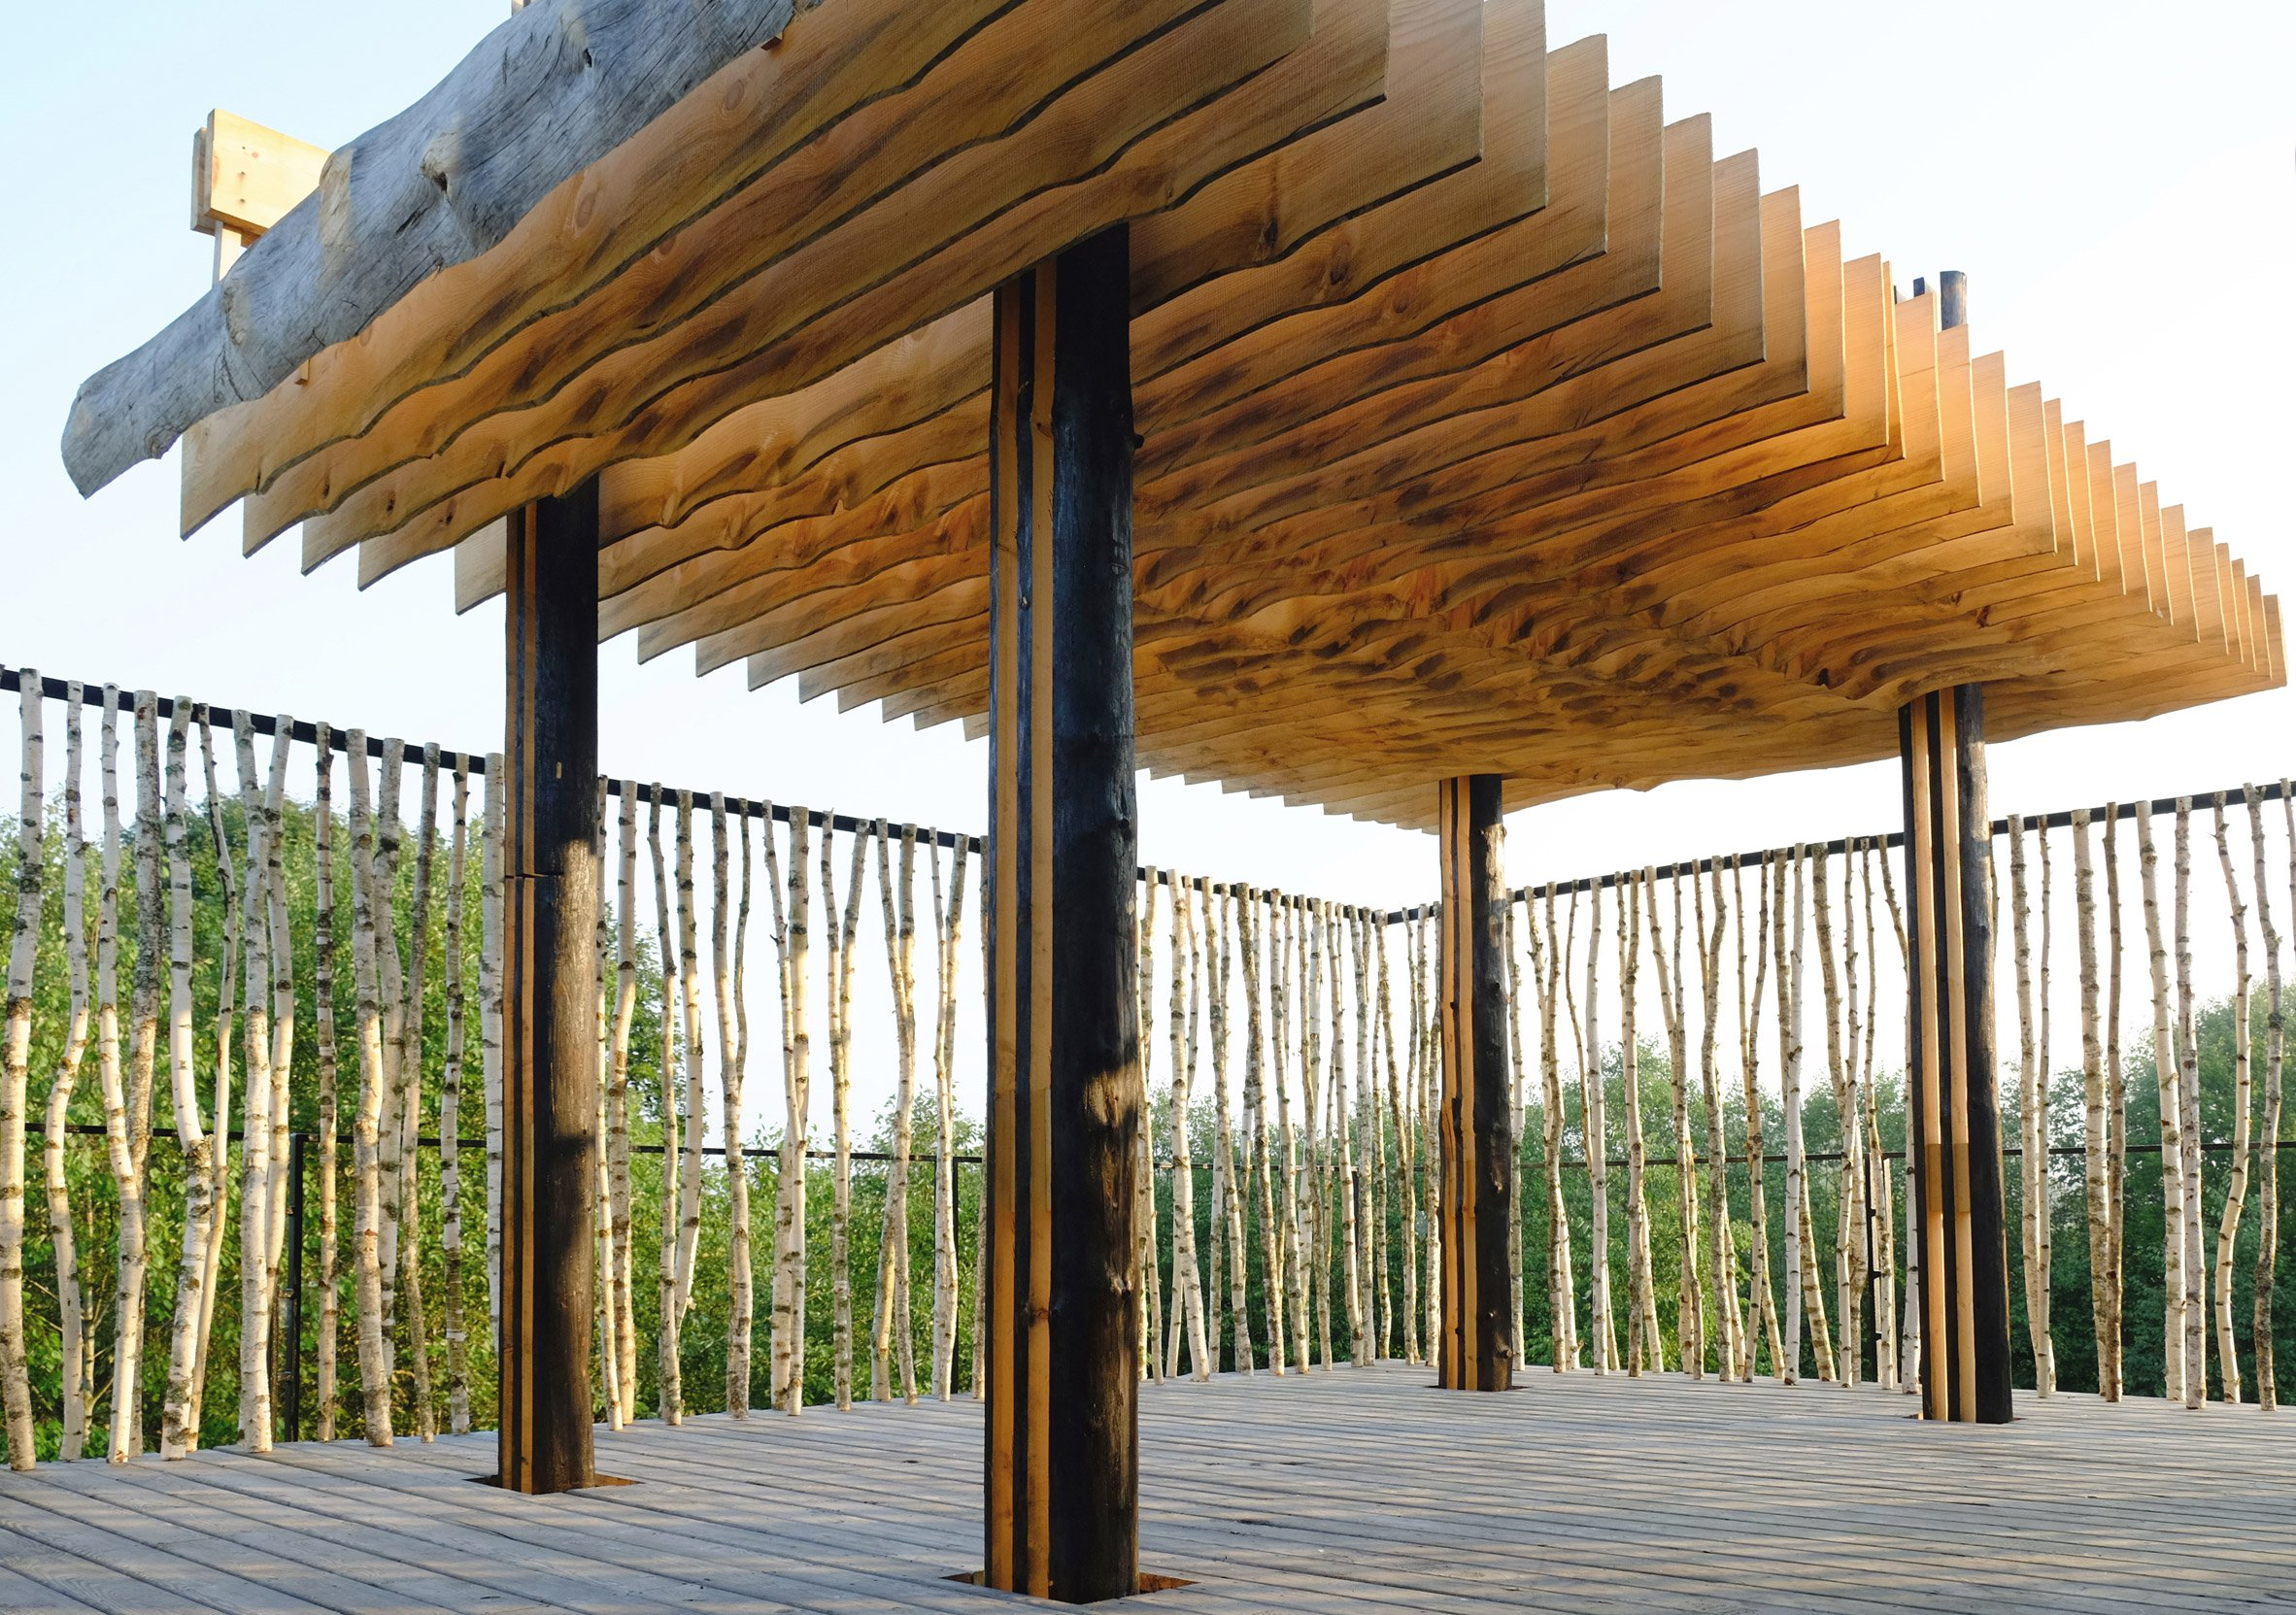 Slices of timber align to form roof of outdoor classroom near Moscow